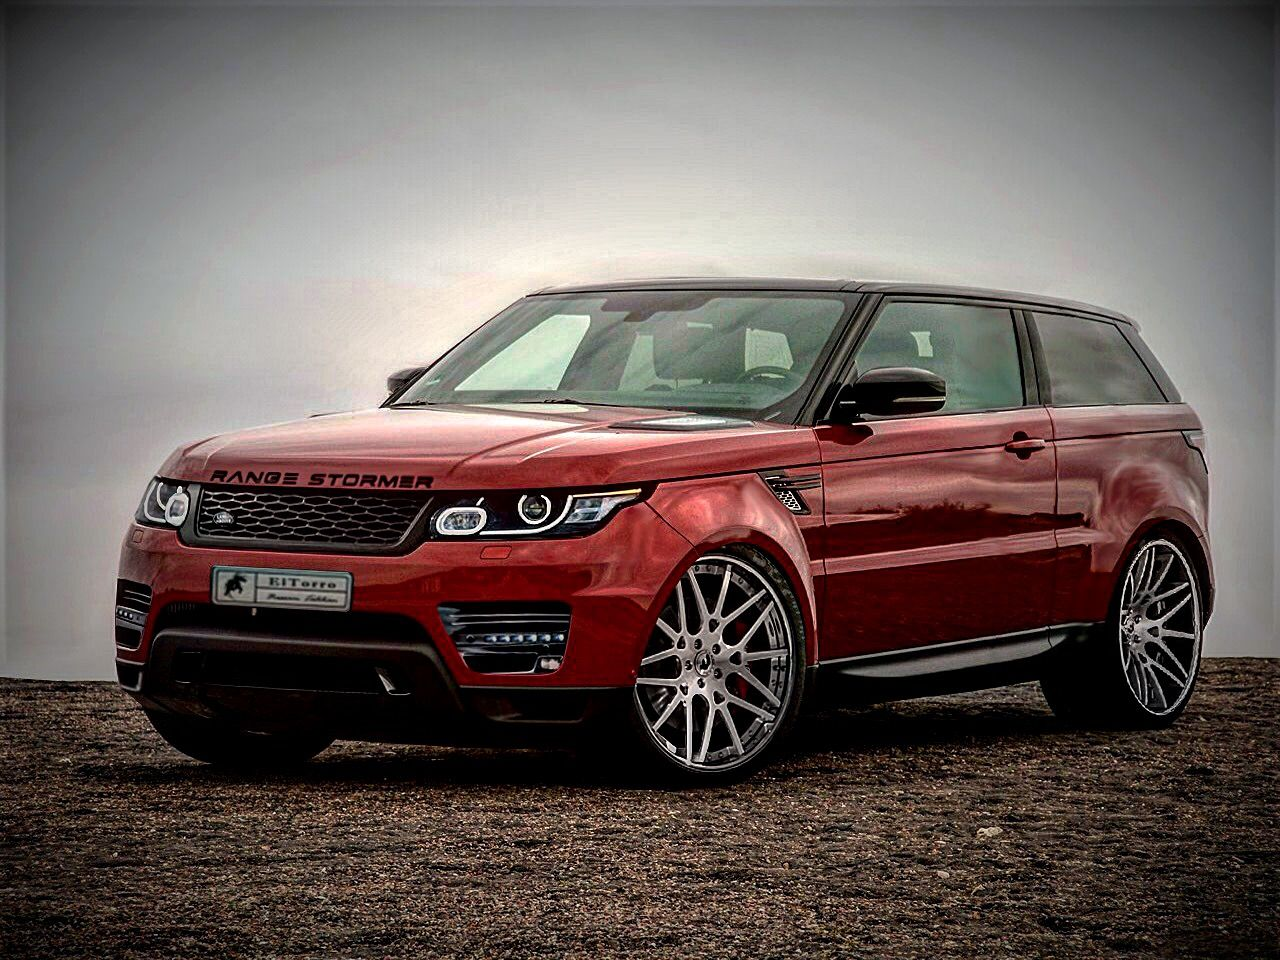 Stormer Next Gen (With images) Range rover